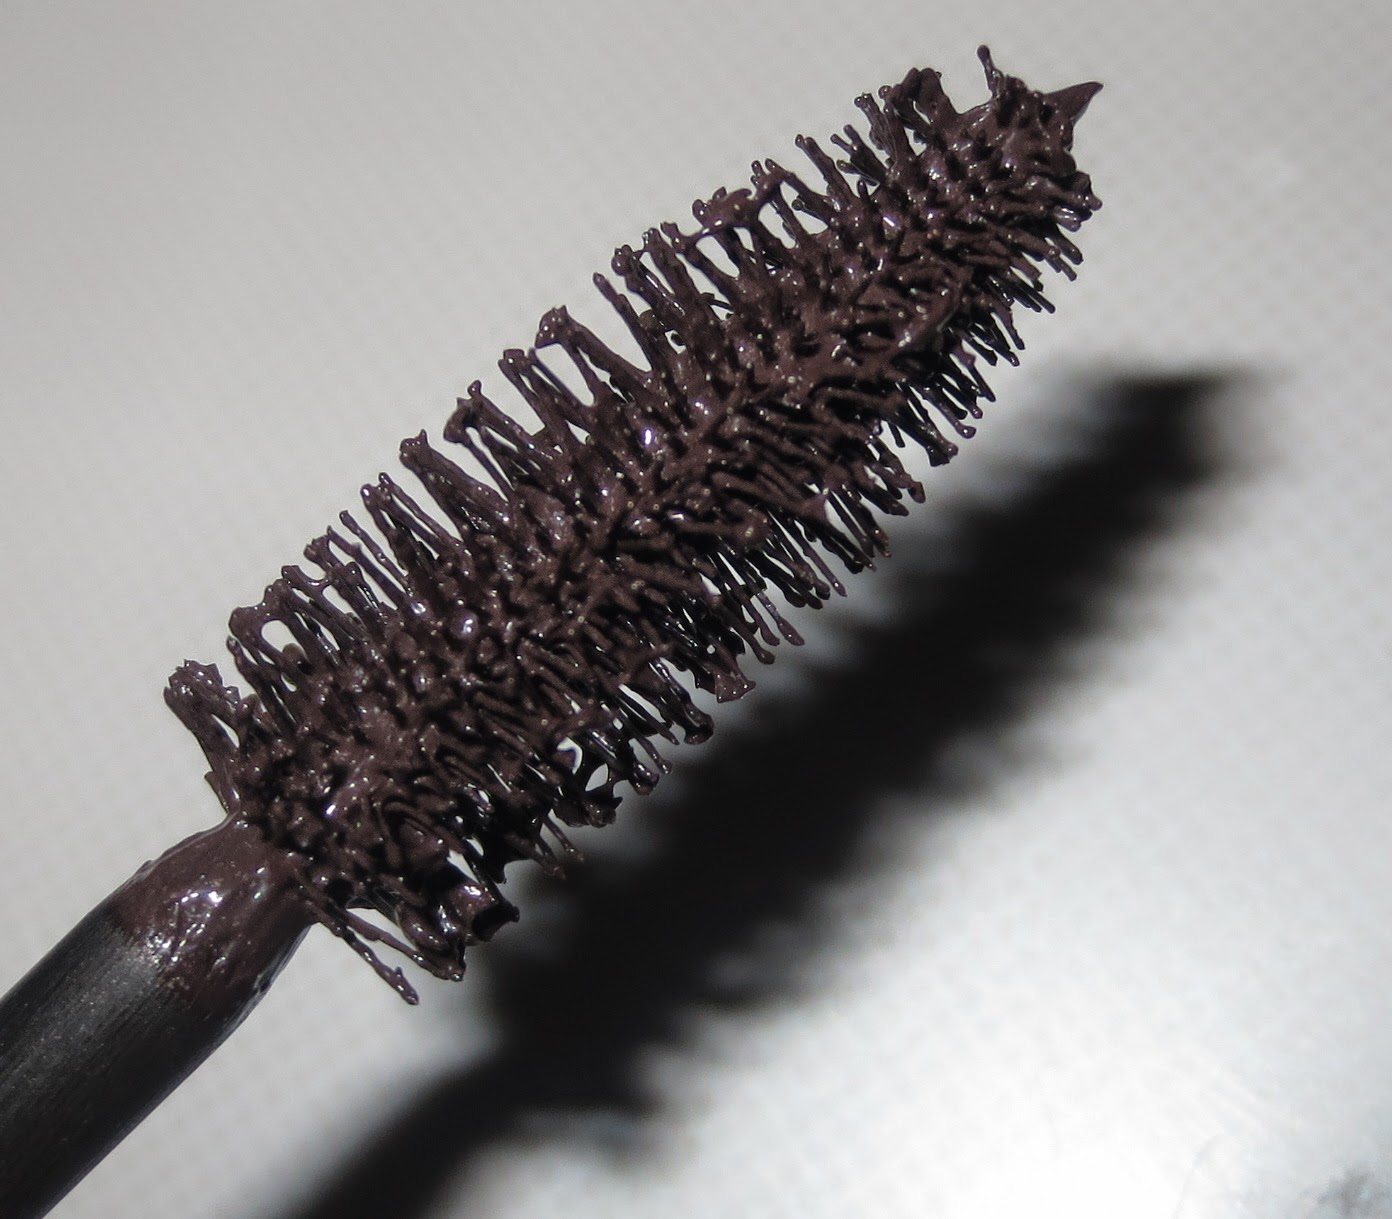 Almay Intense i-color Volumizing Mascara in Mocha wand